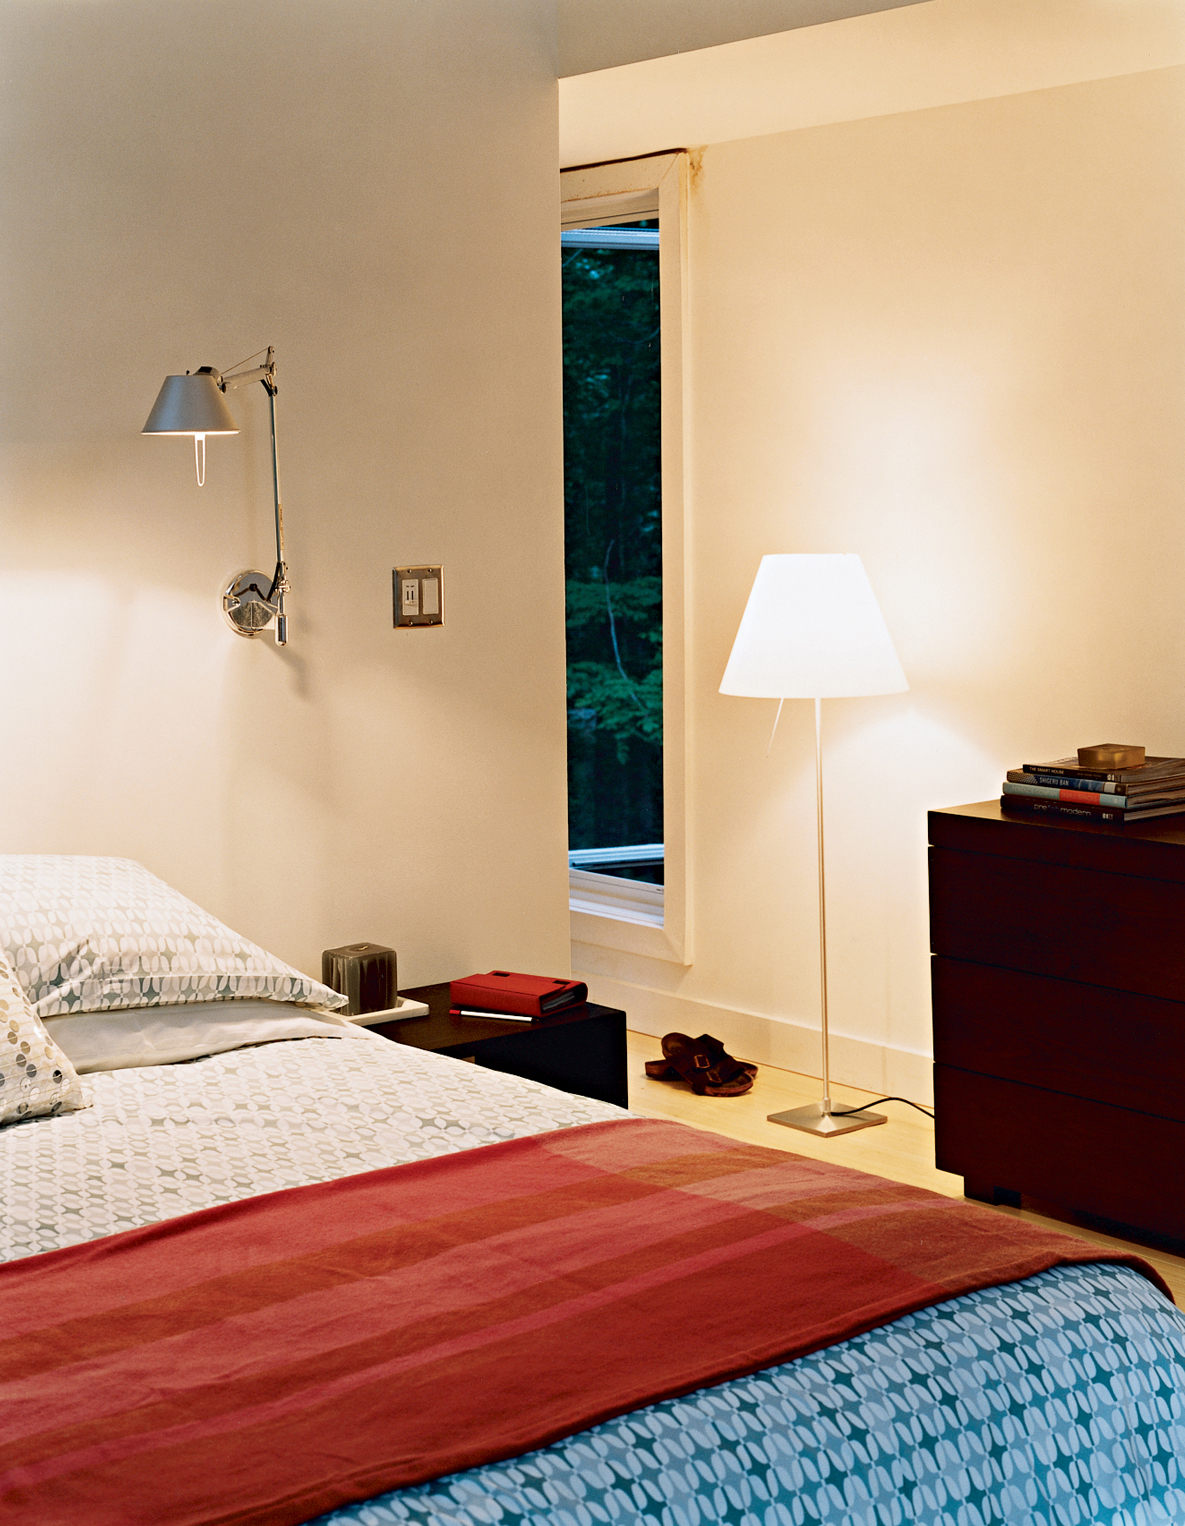 The master bedroom has a number of windows in varying shapes and sizes, providing unique views to the woods outside. The bed, chest of drawers, side tables, and geometric linens are all from West Elm. The Tolomeo wall lamps are by Artemide.